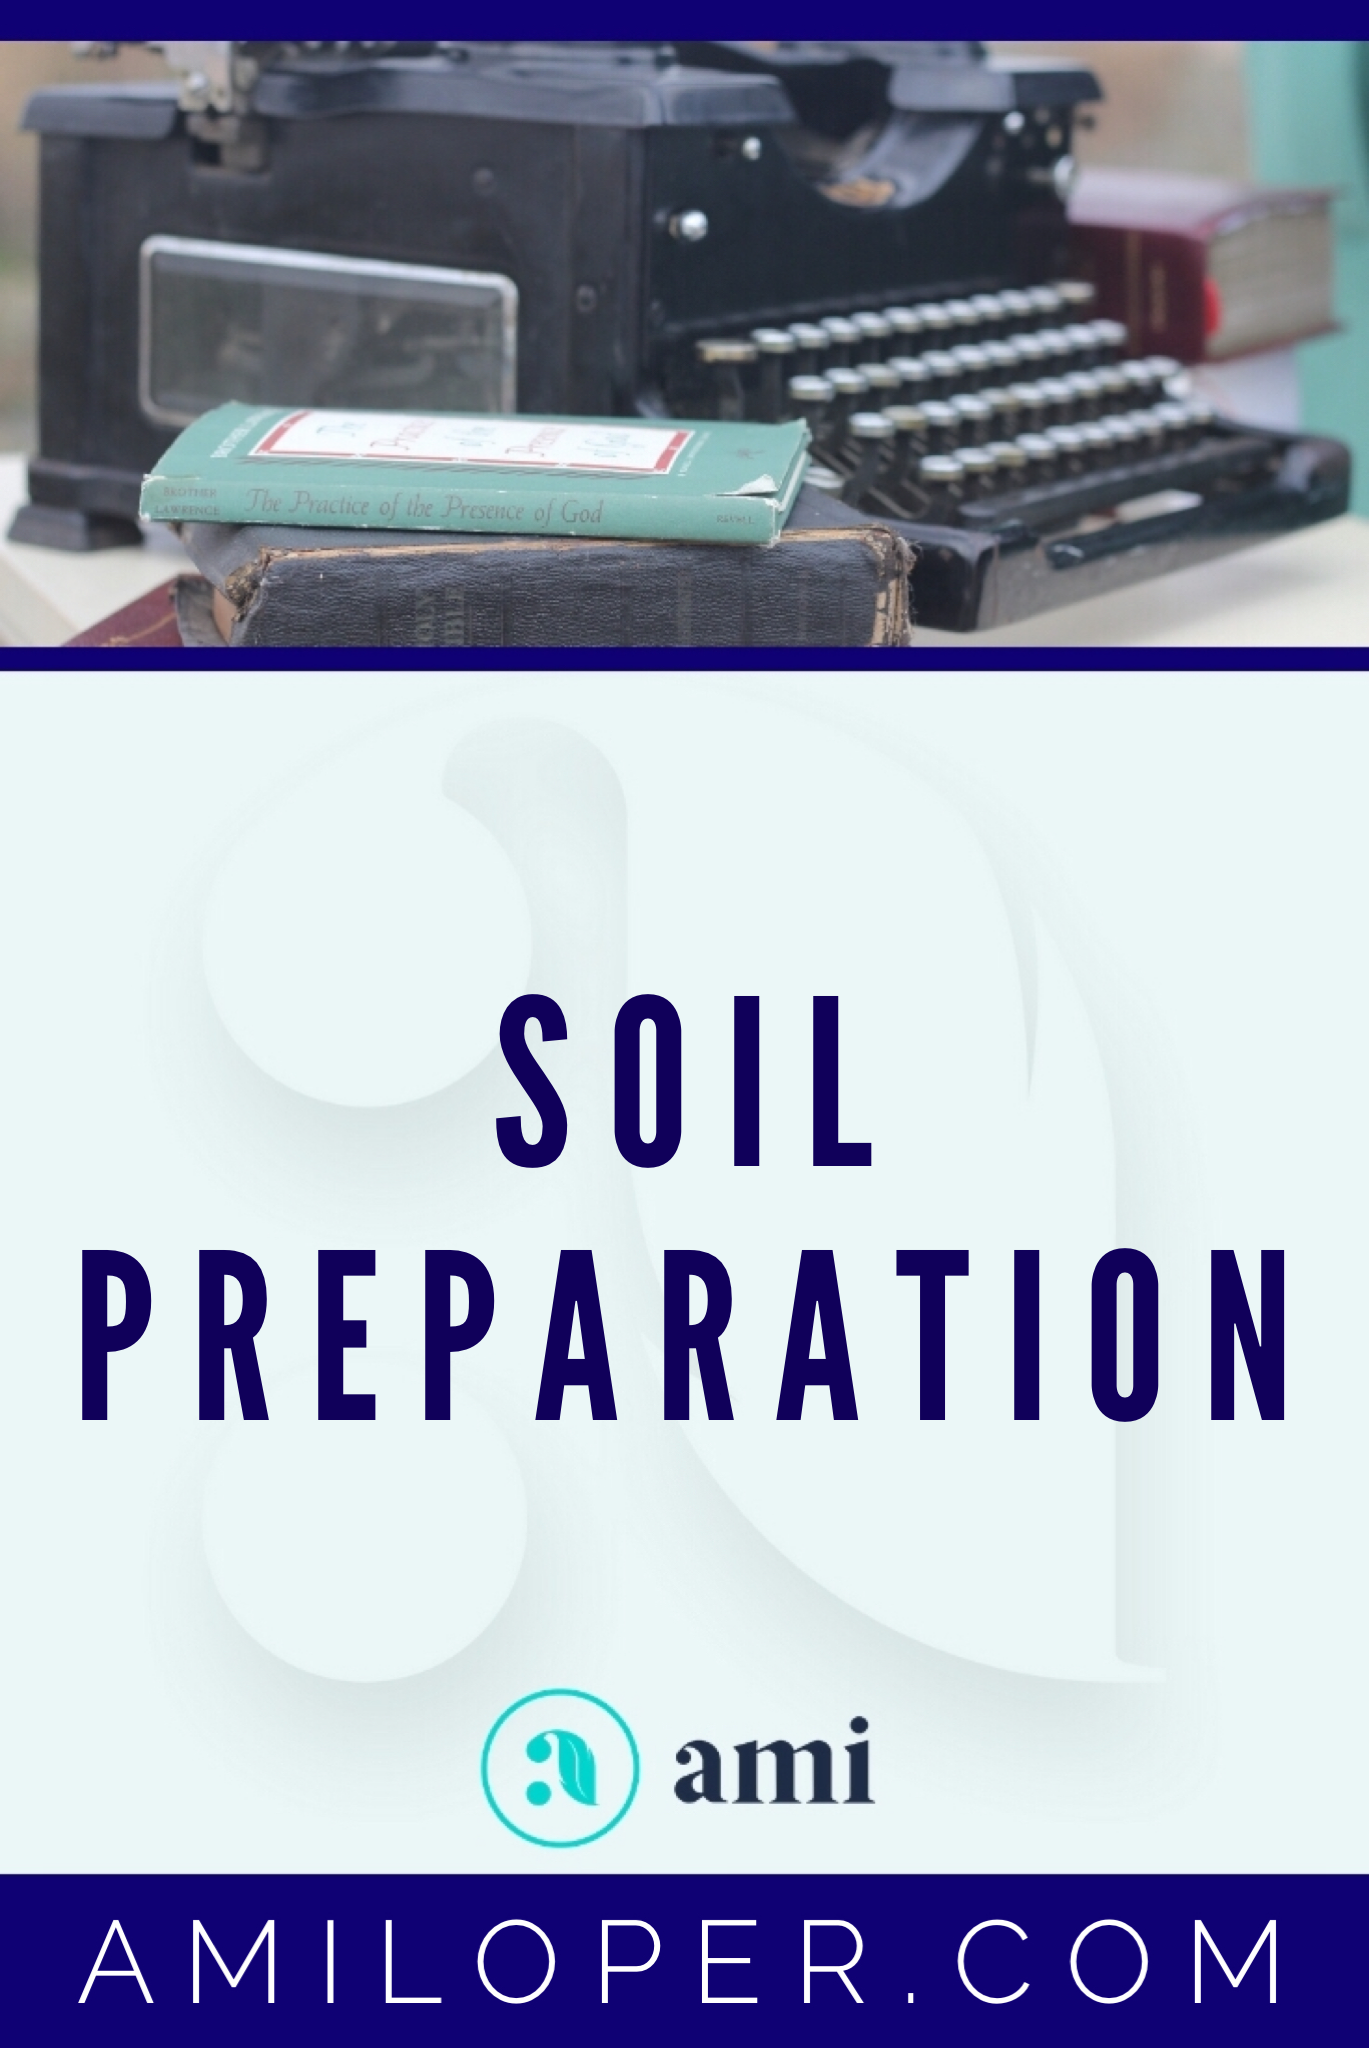 Why can't things happen NOW? Why all this seemingly endless wait? I'm ready to spread my wings, so what am I waiting for?  #Preparation #ChristianBlog